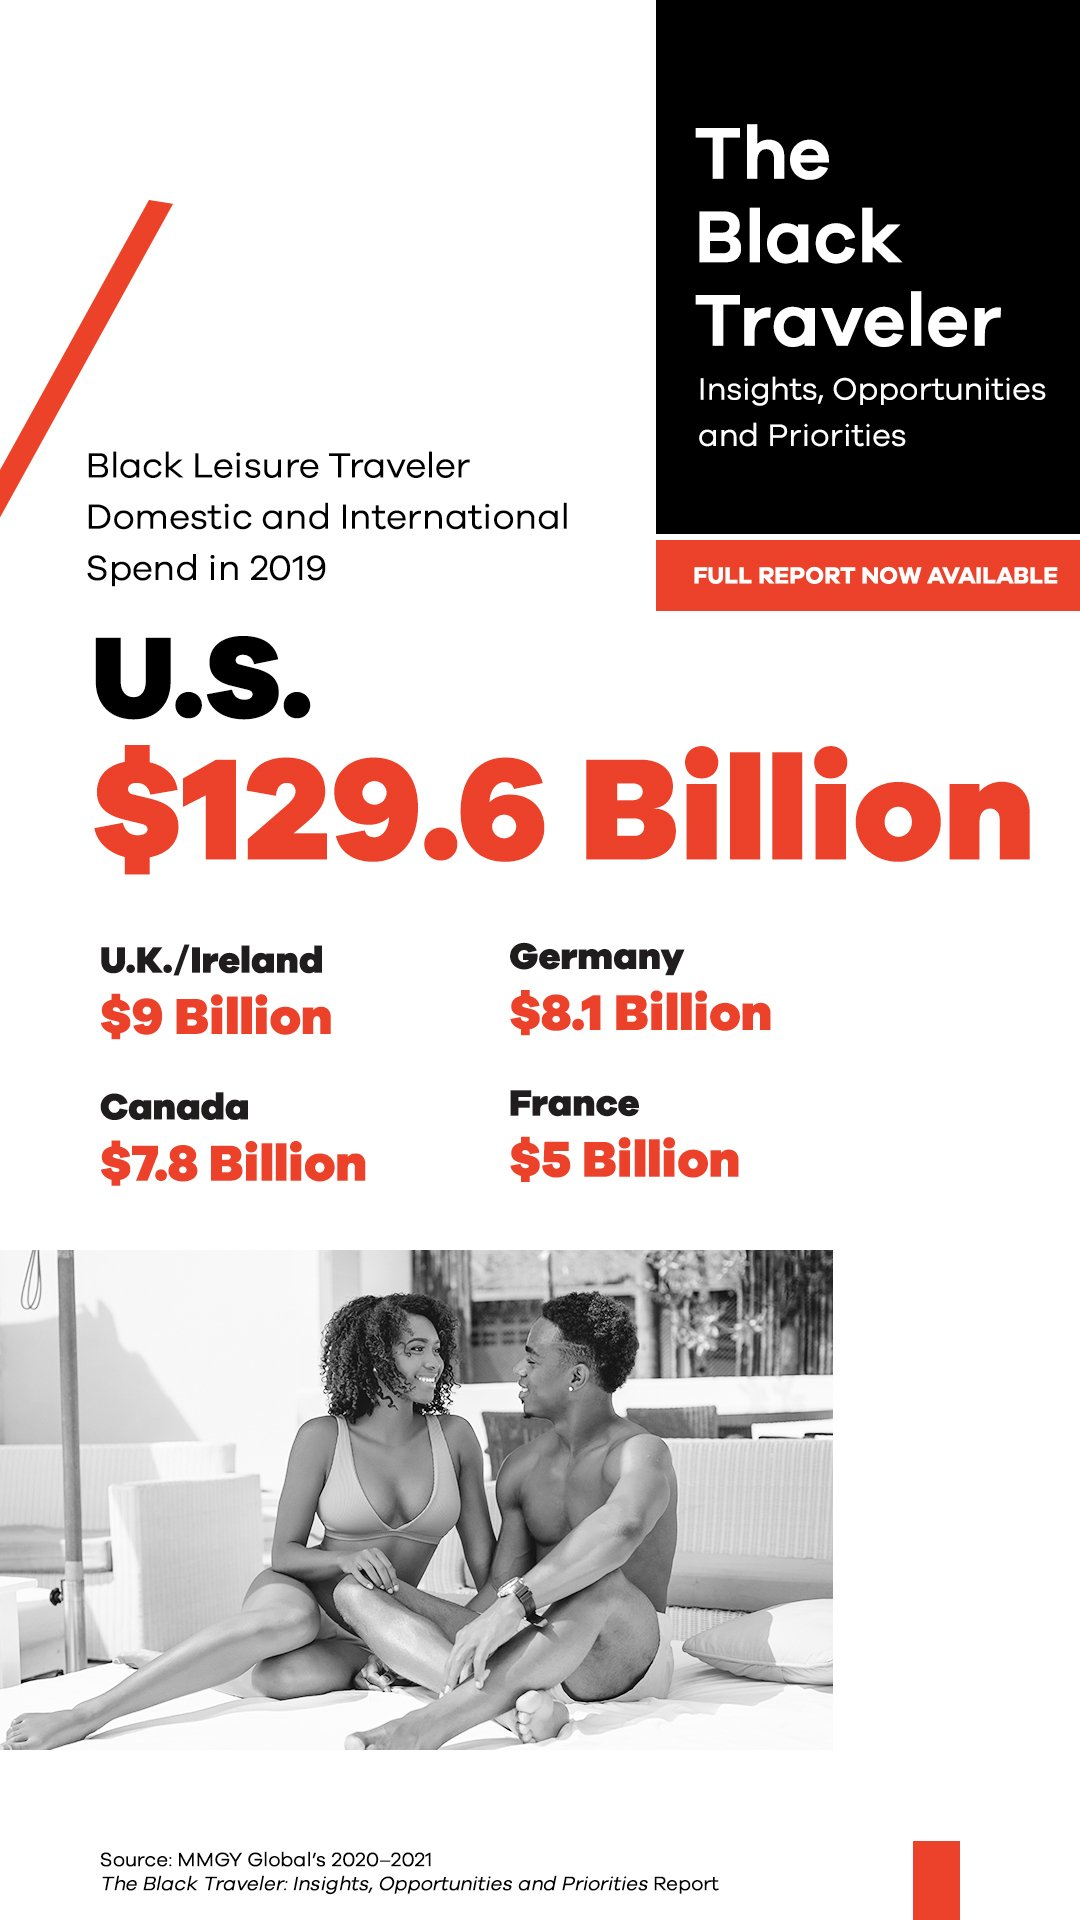 Black U.S. Leisure Travelers Spent $129.6 Billion on Domestic and International Travel in 2019